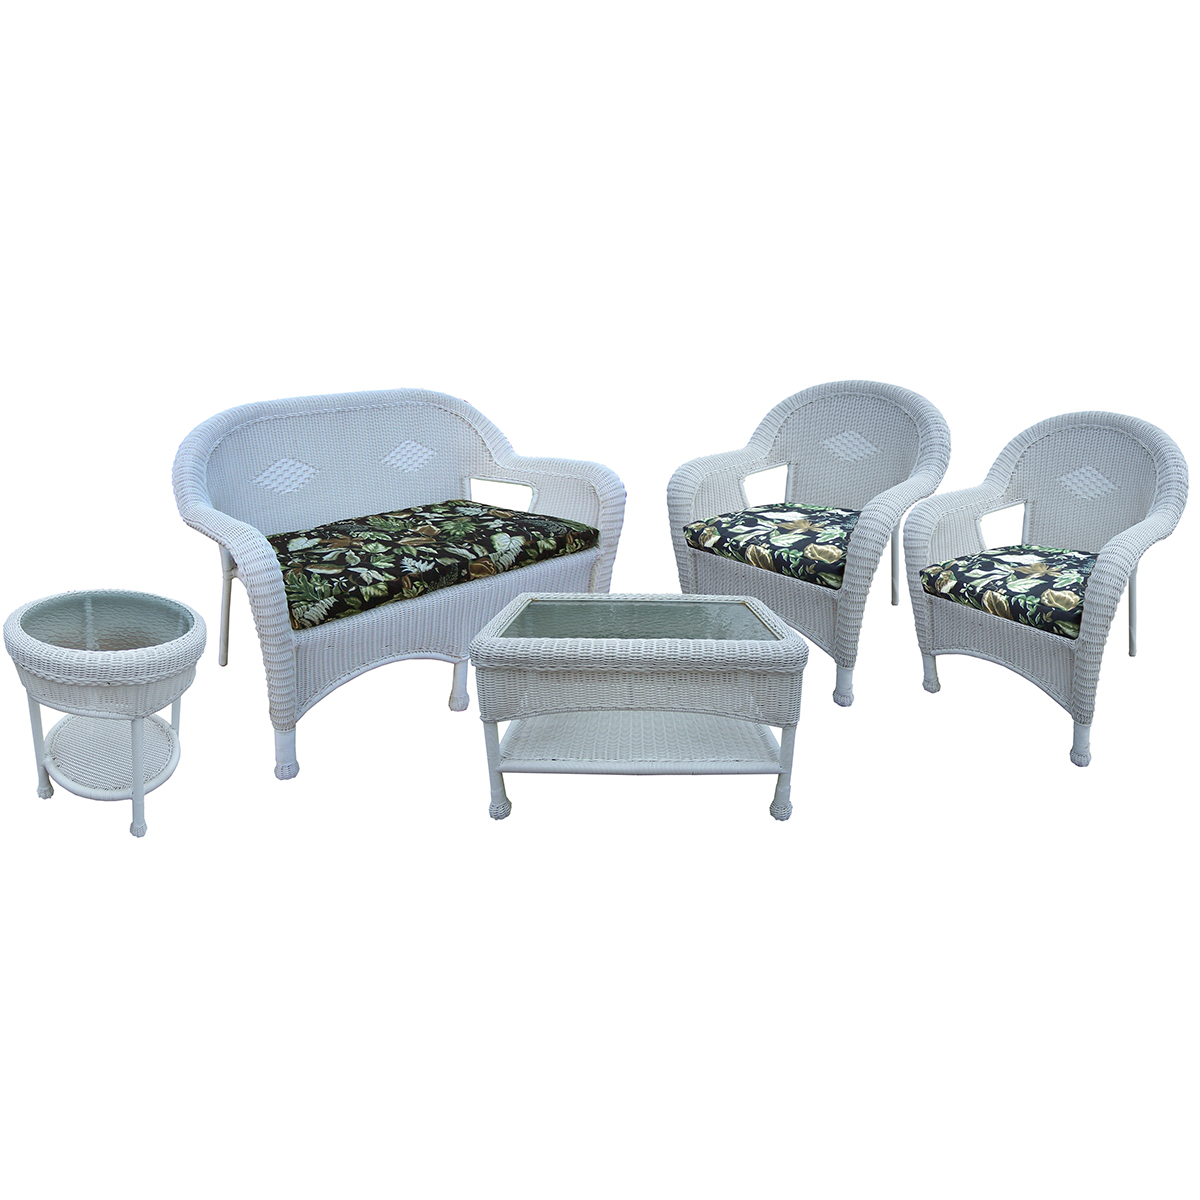 white resin wicker chairs best for nursery uk oakland living 5 pc seating set with